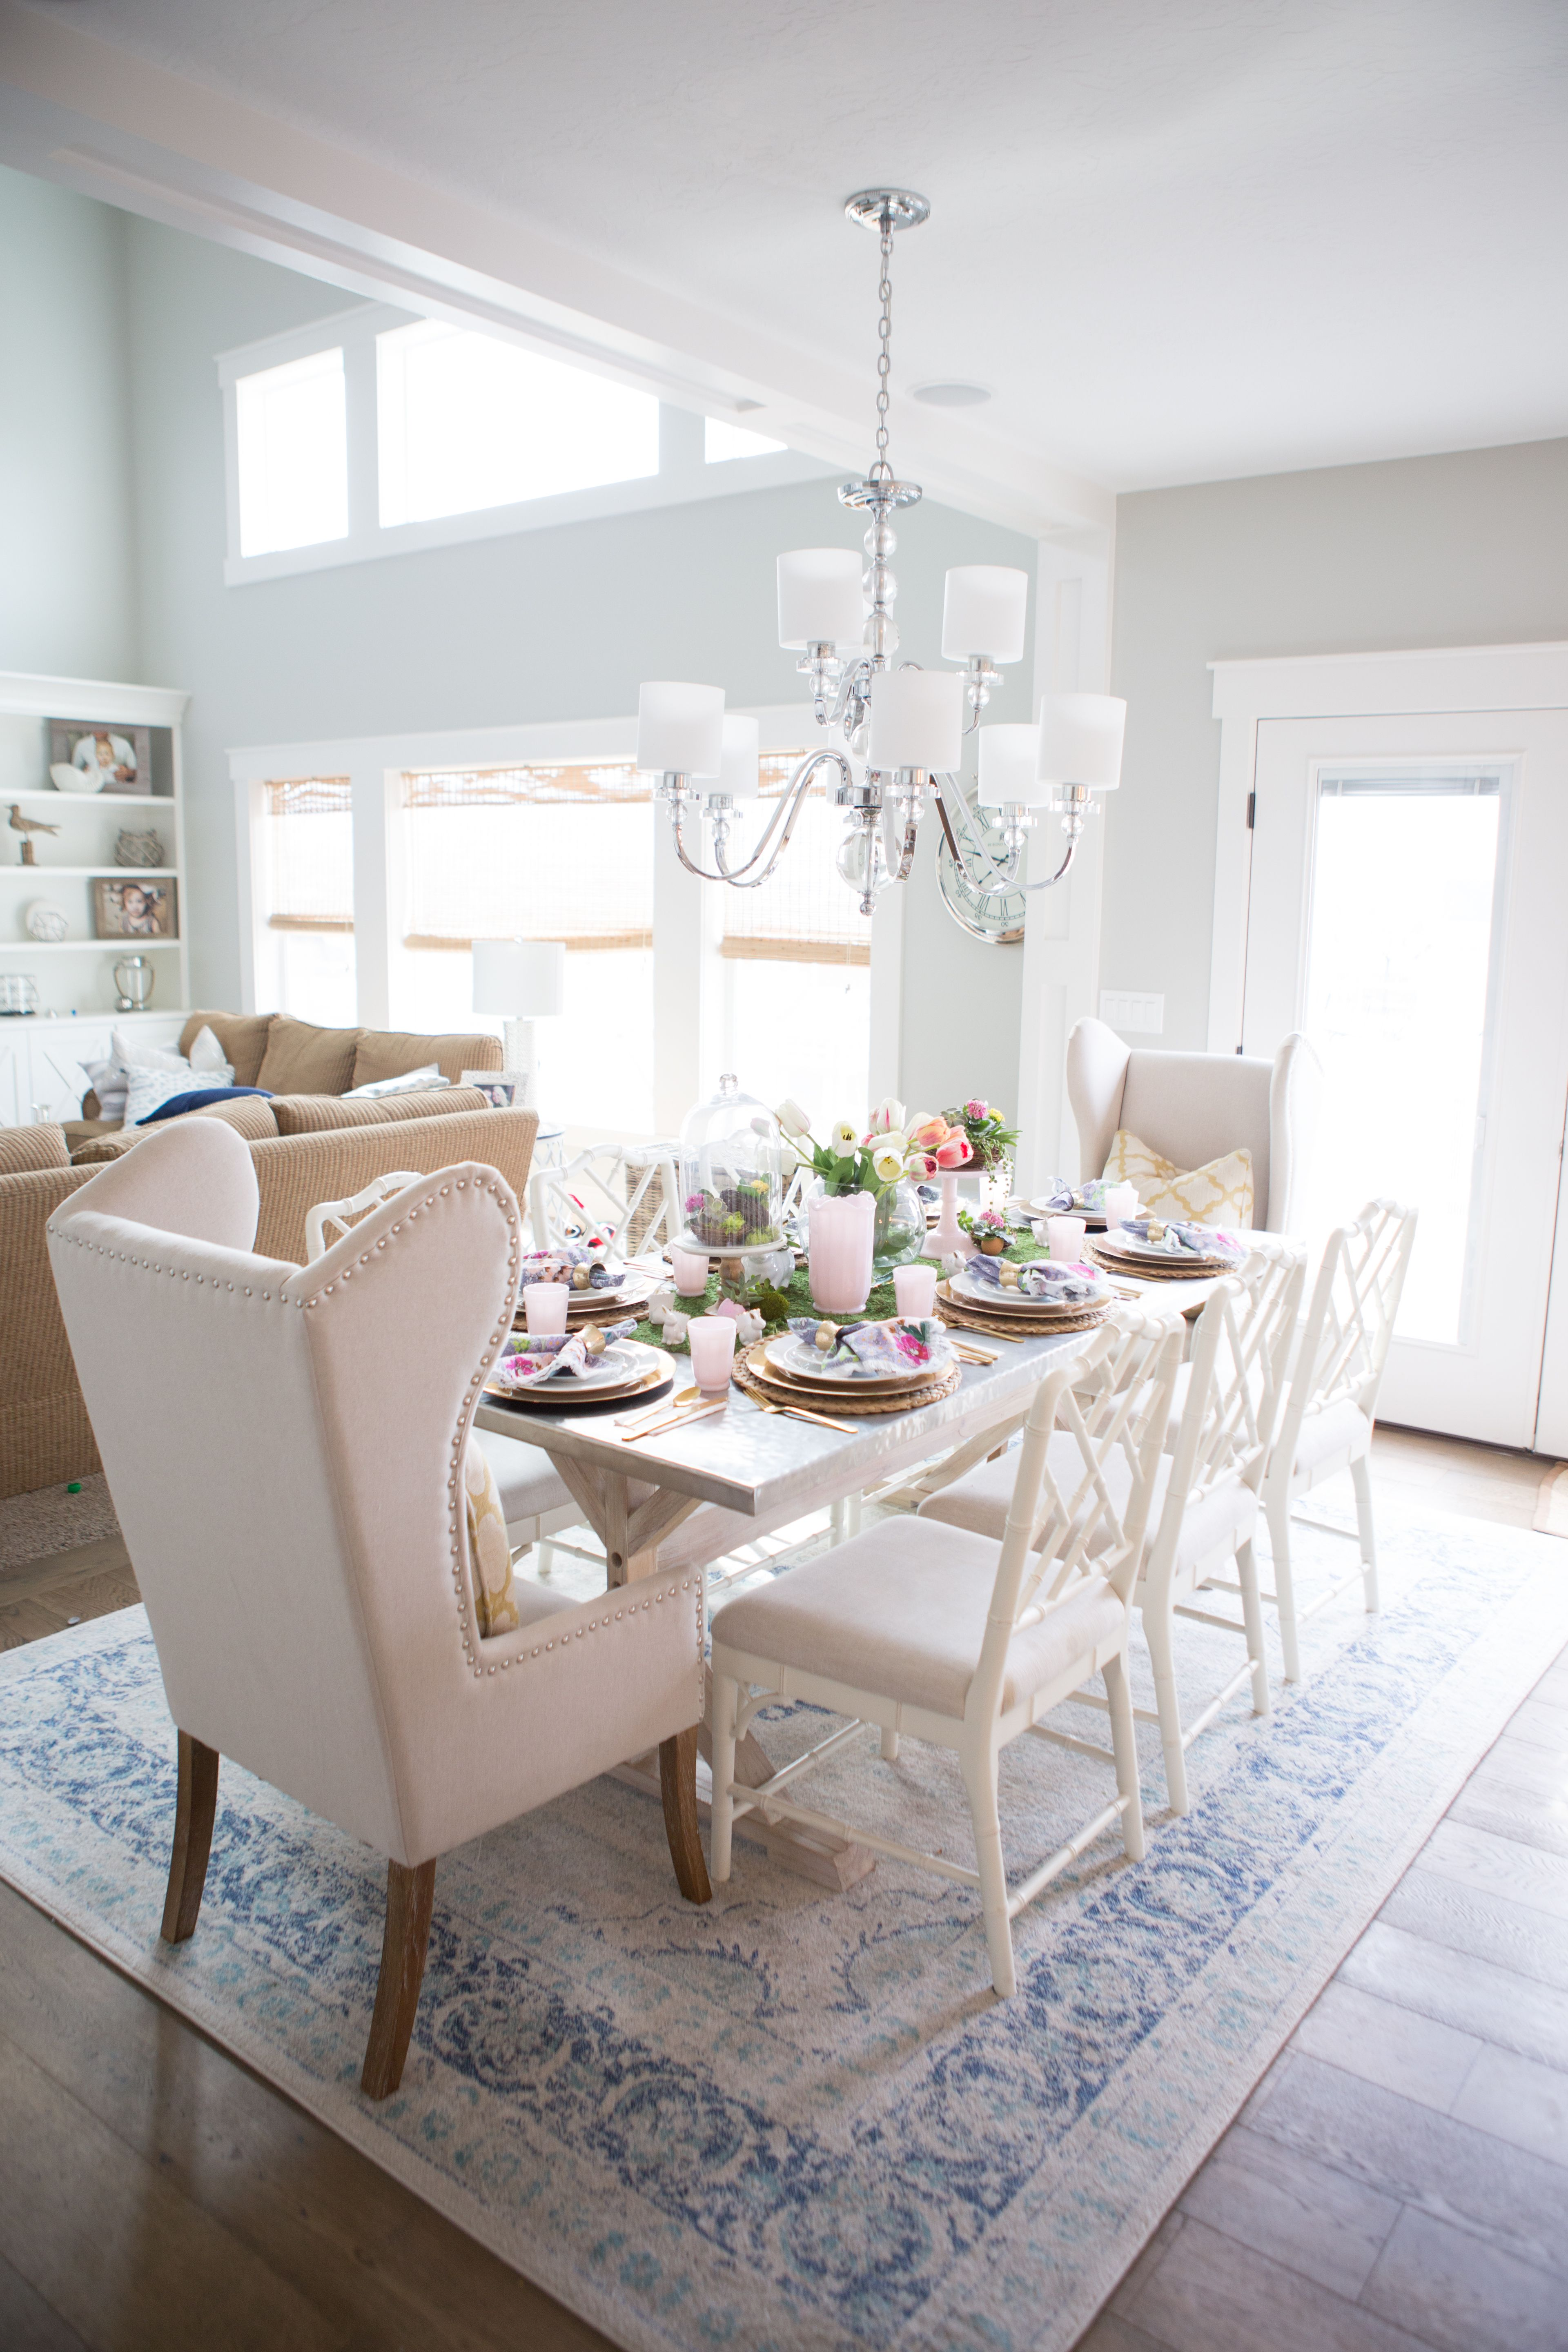 Easter Table scape | Dining room design, Easter table and Room